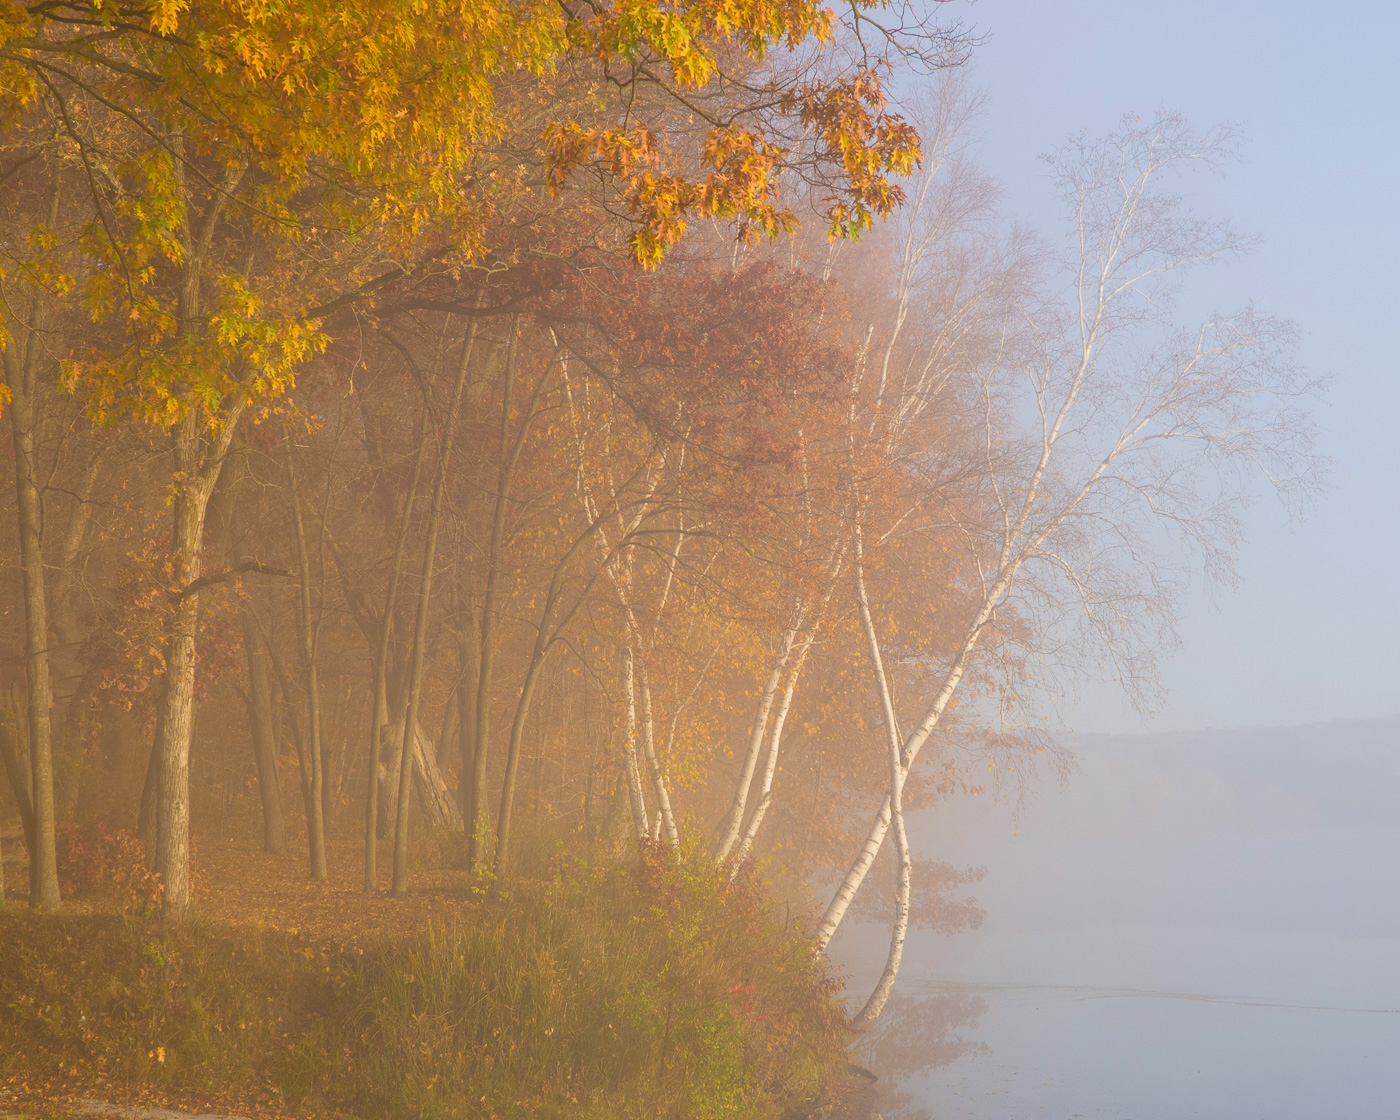 Birch and maple trees in fog along the shore of the St. Croix National Scenic River, Minnesota/Wisconsin